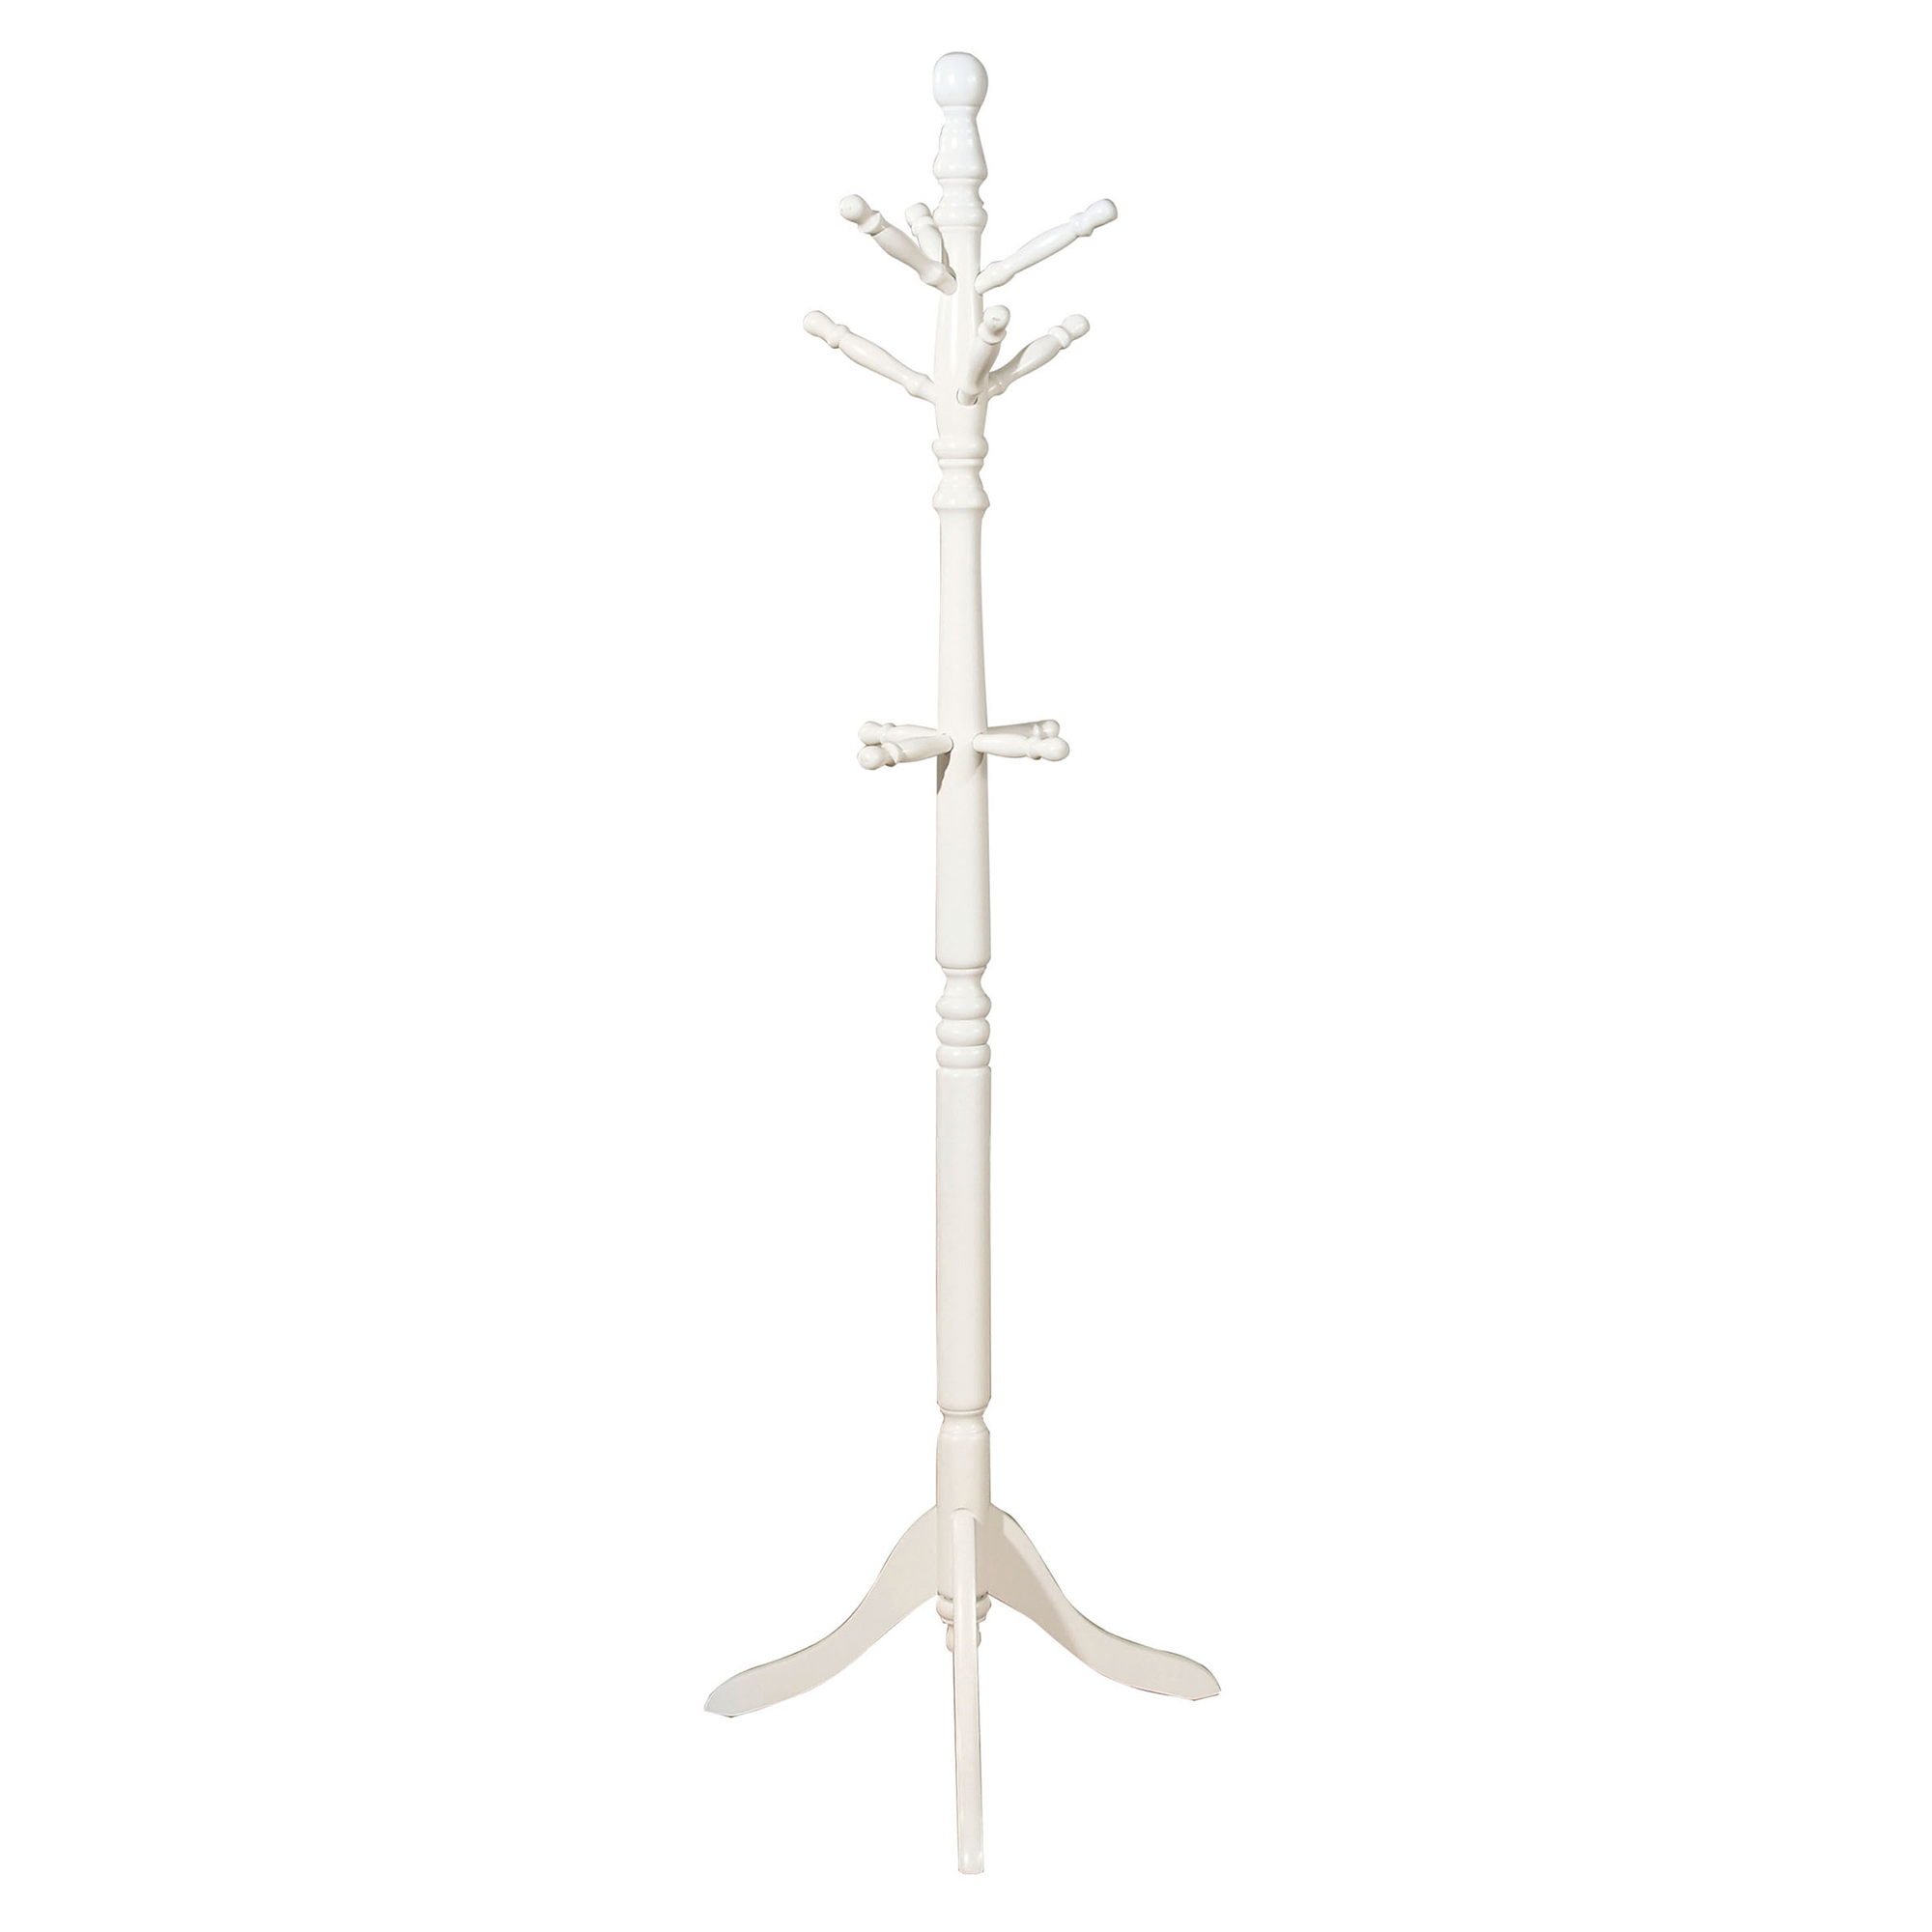 Transitional Style Coat Rack, White